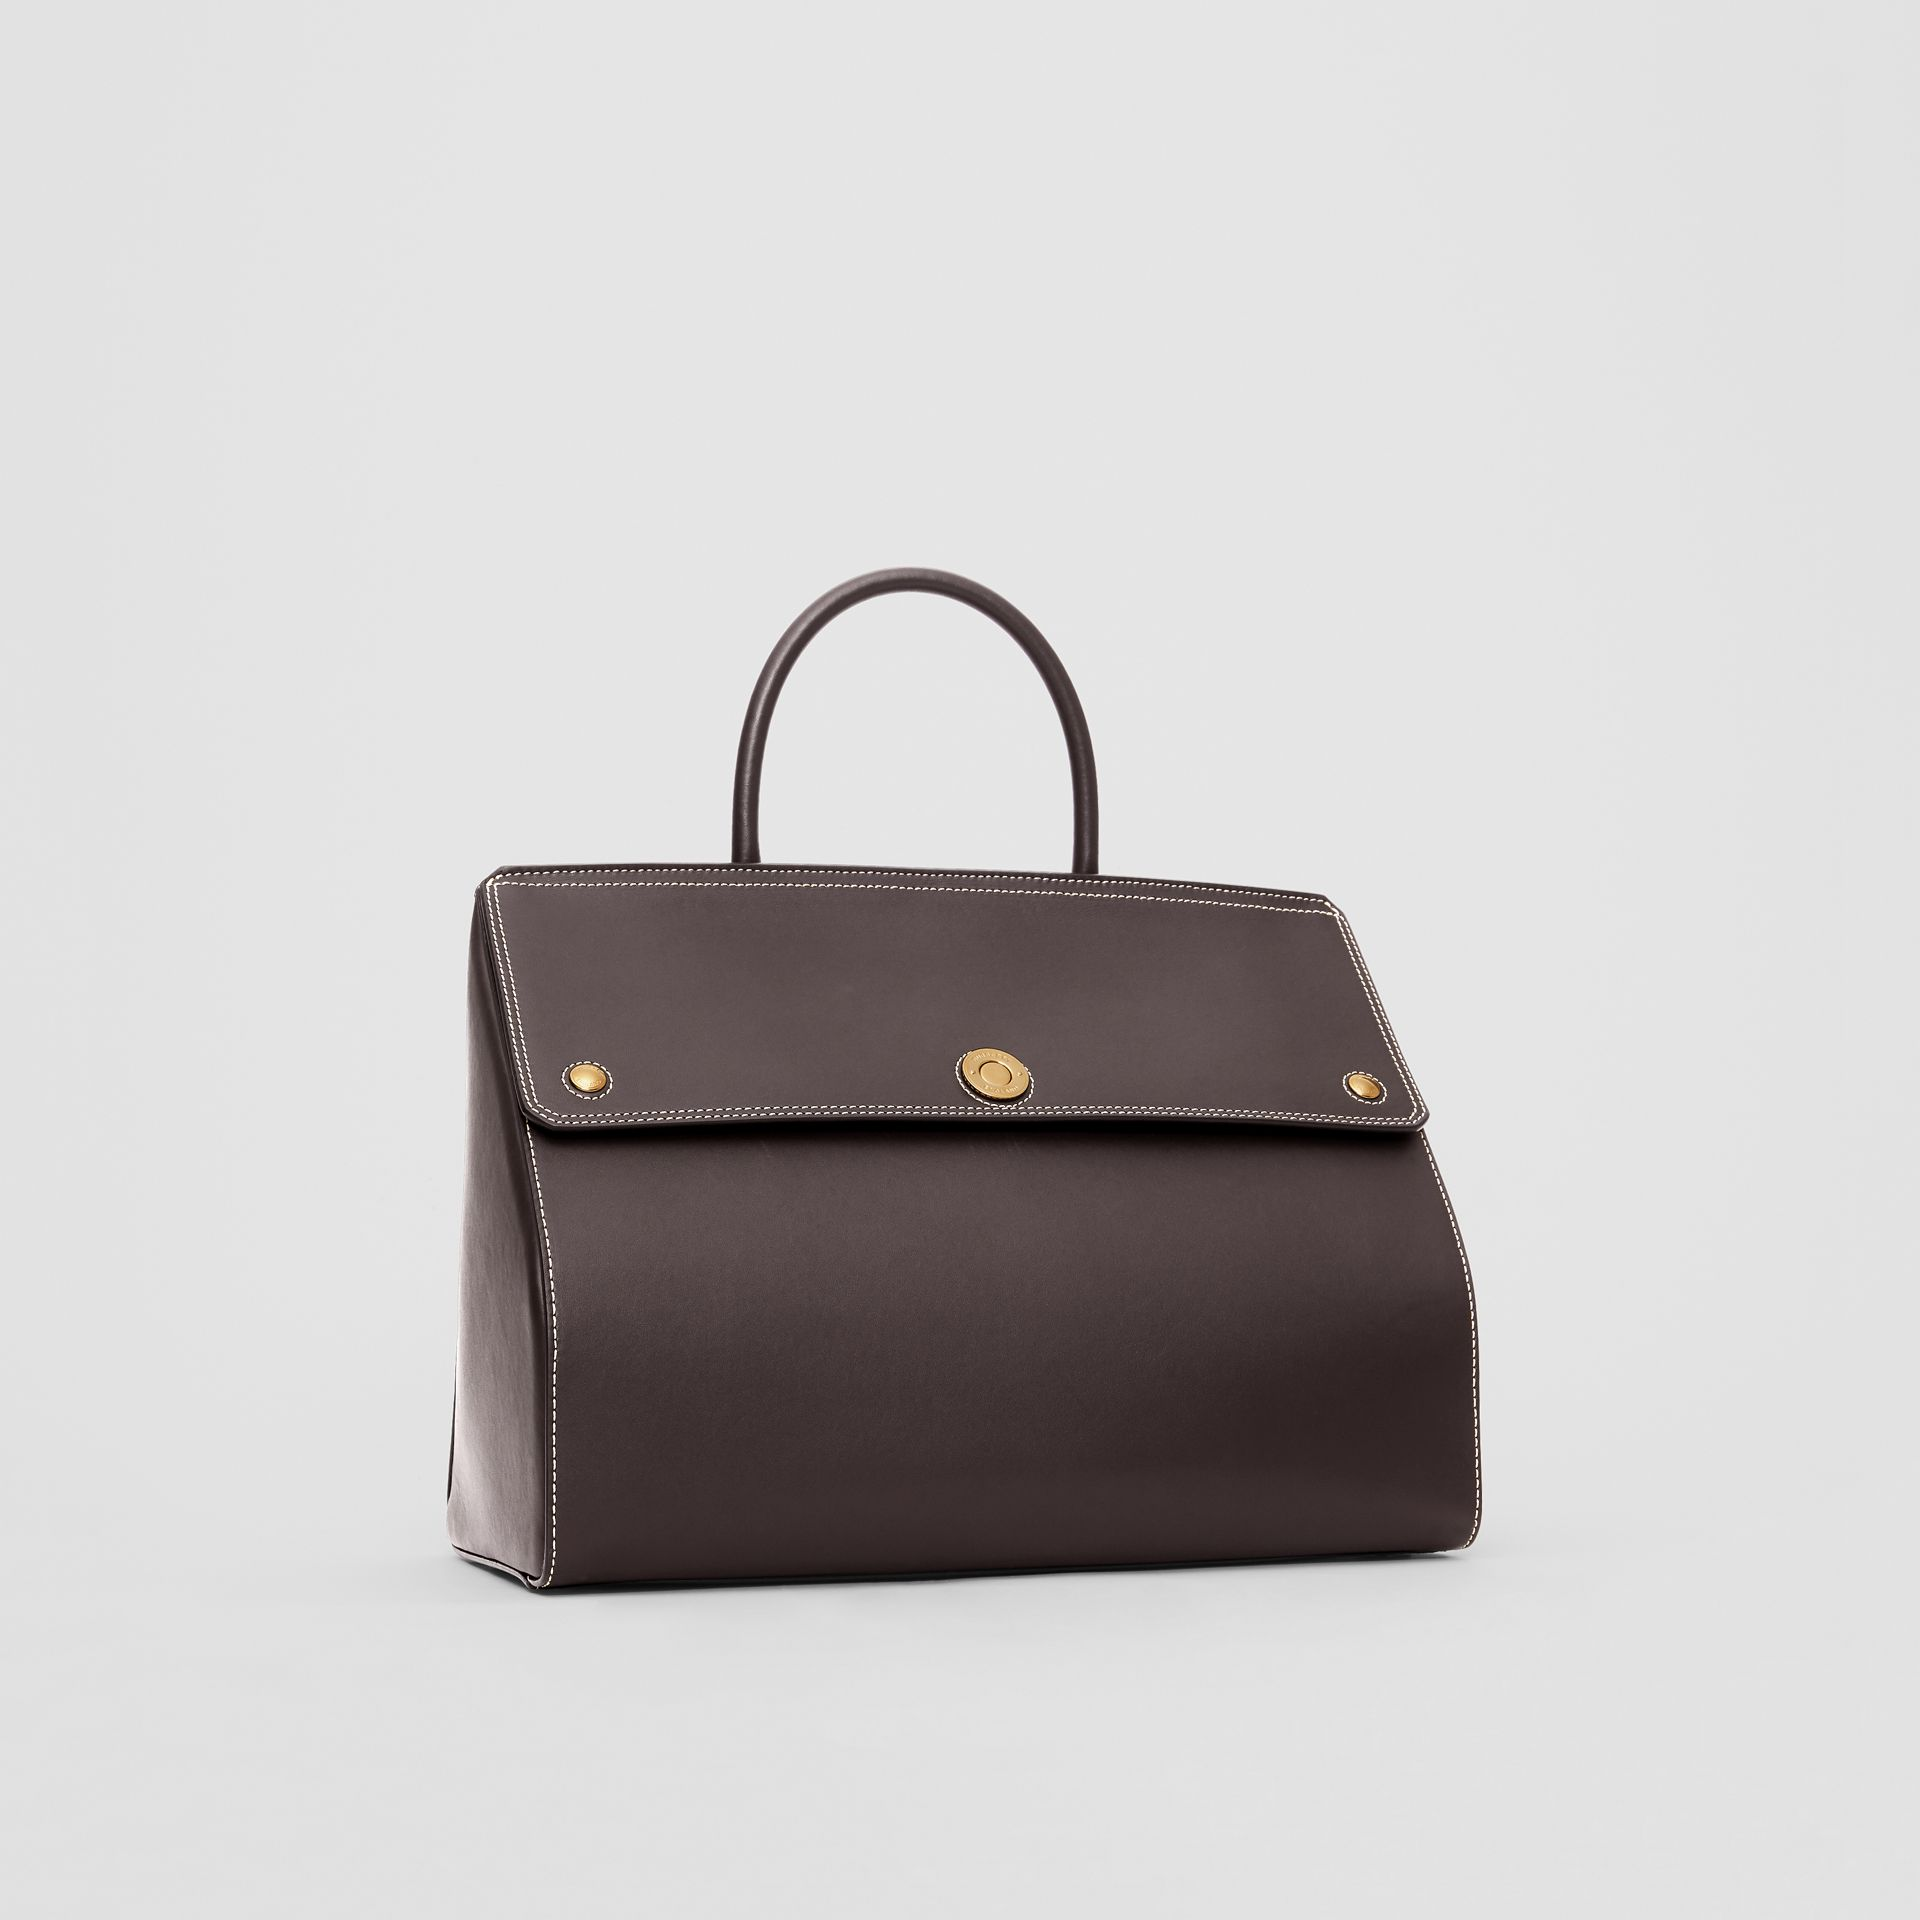 Medium Leather Elizabeth Bag in Coffee - Women | Burberry Canada - gallery image 6